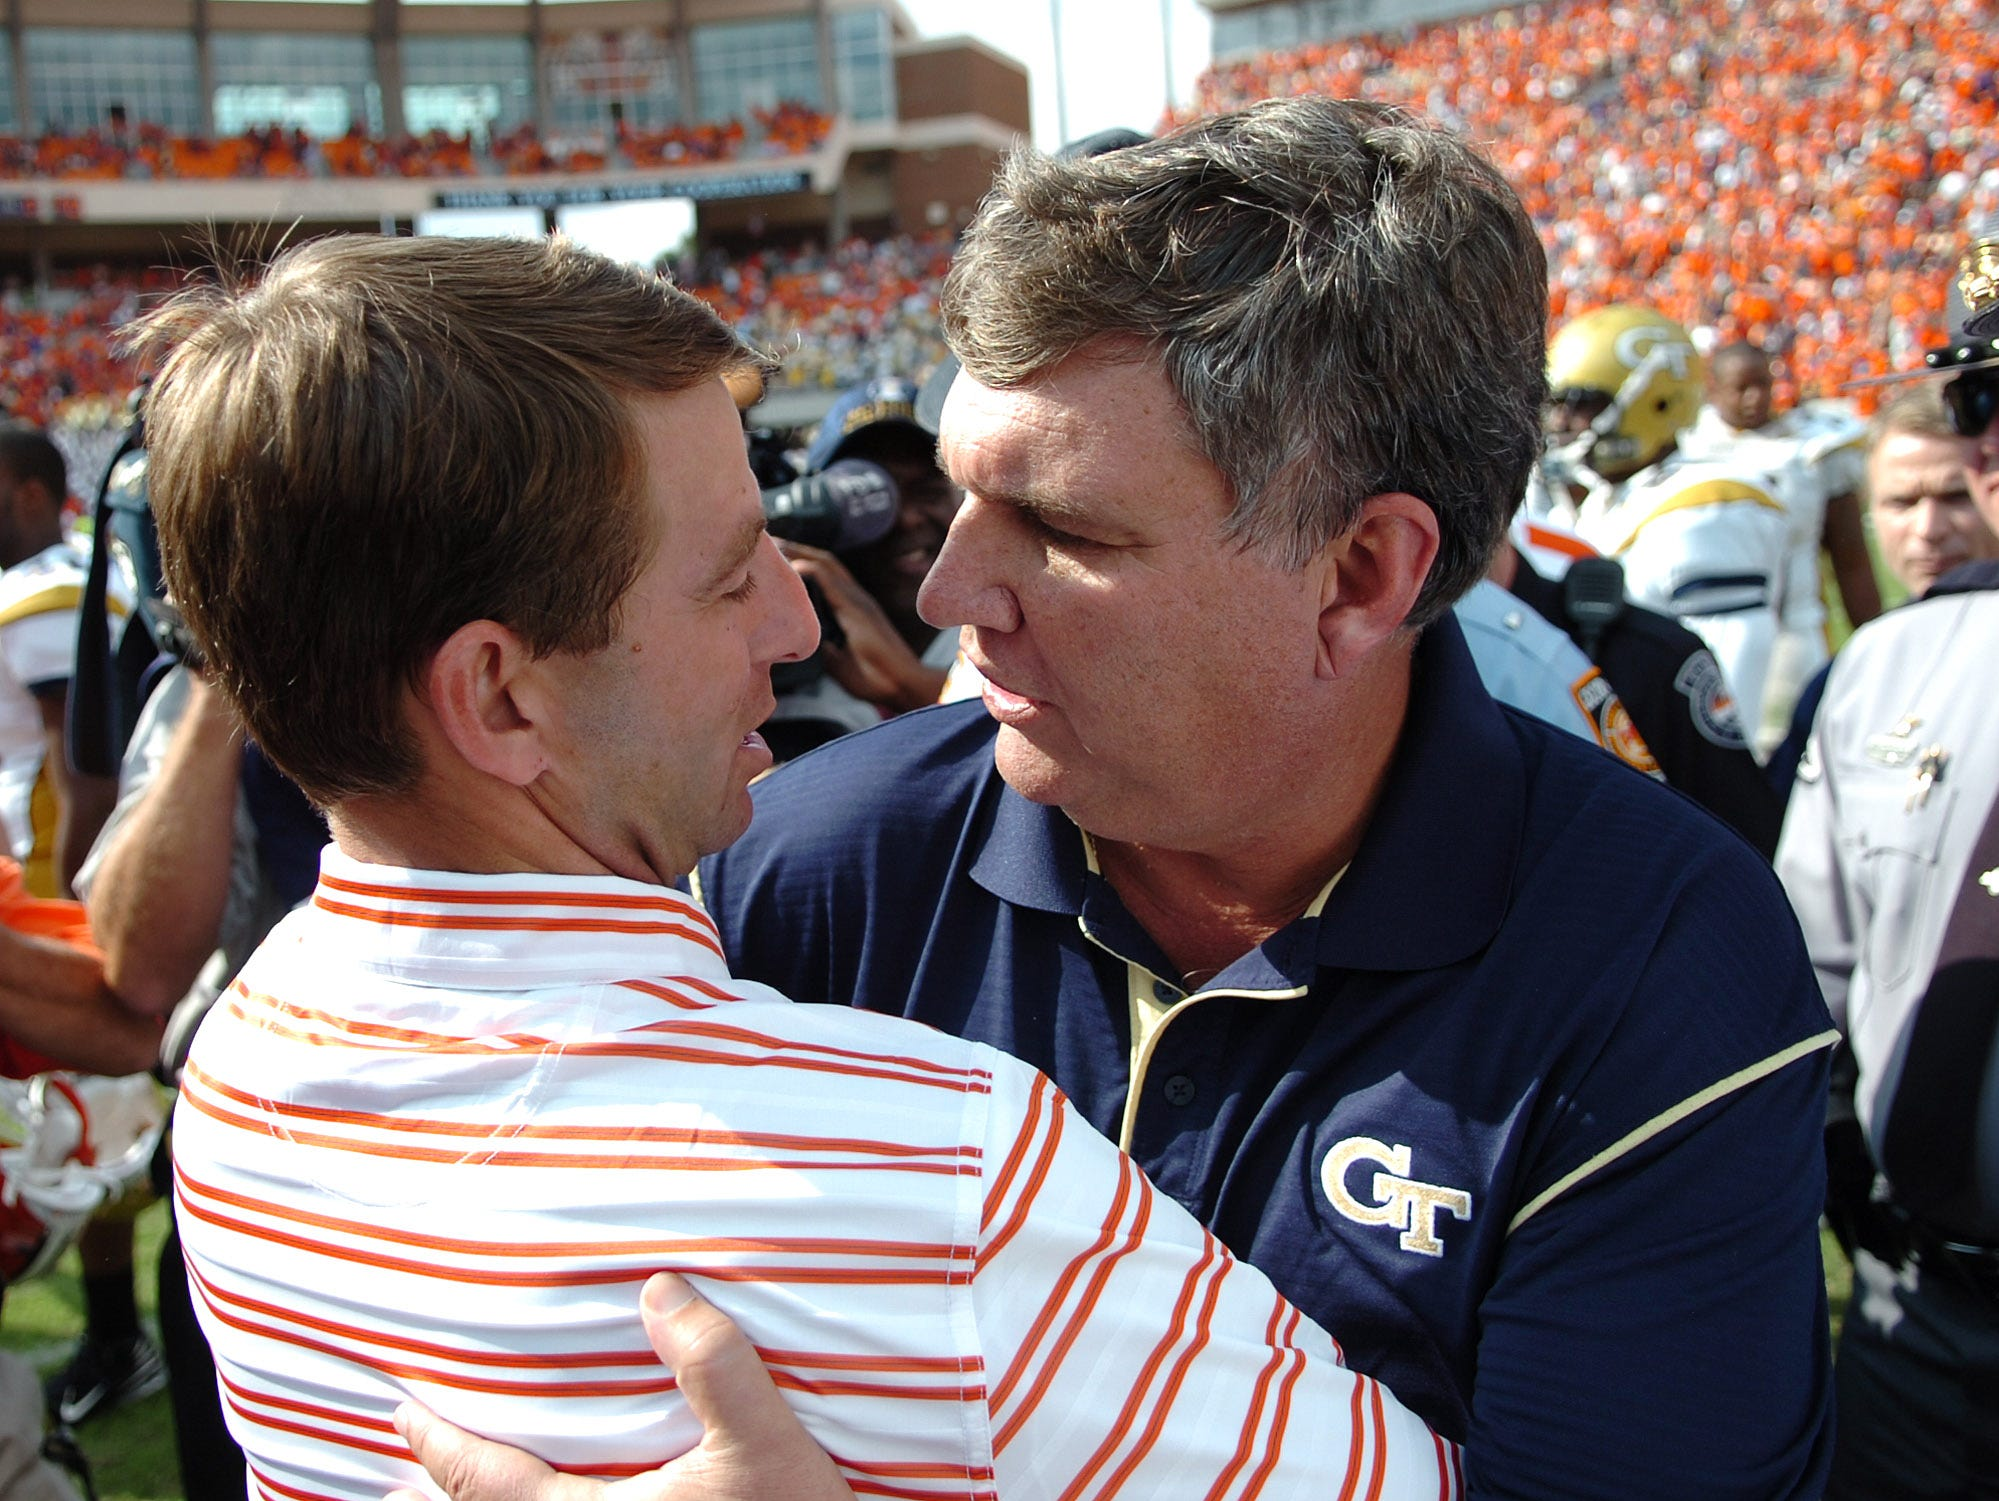 Clemson's  interim head Coach Dabo Swinney meets with Georgia Tech head coach Paul Johnson after the Tigers 21-17 loss Saturday, Oct. 18, 2008 at Clemson's Memorial Stadium.